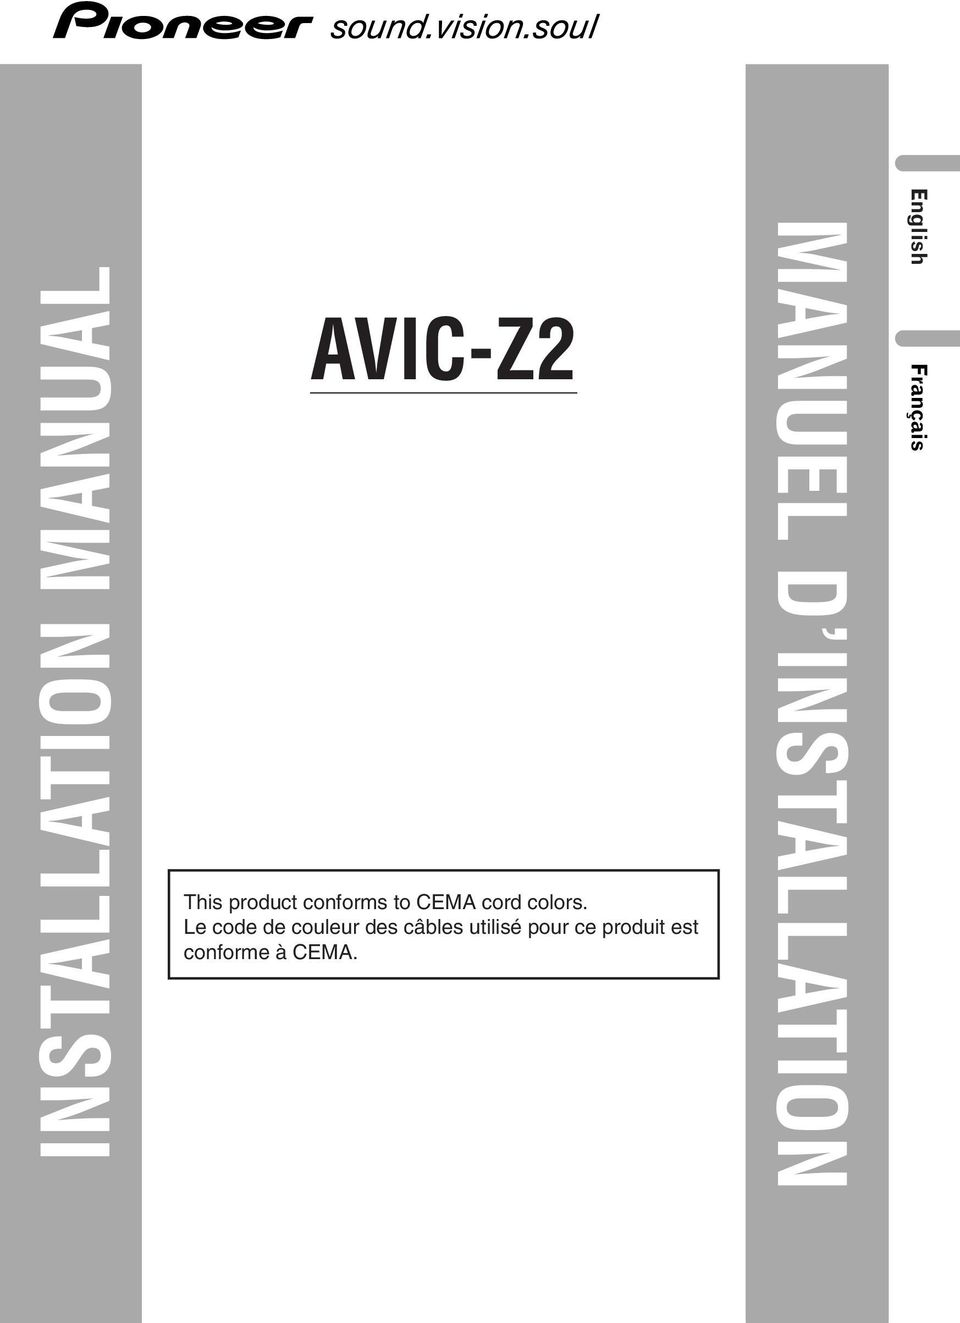 Manuel D Installation Manual Avic Z2 English Franais Pioneer F700bt Wiring Diagram Le Code De Couleur Des Cbles Utilis